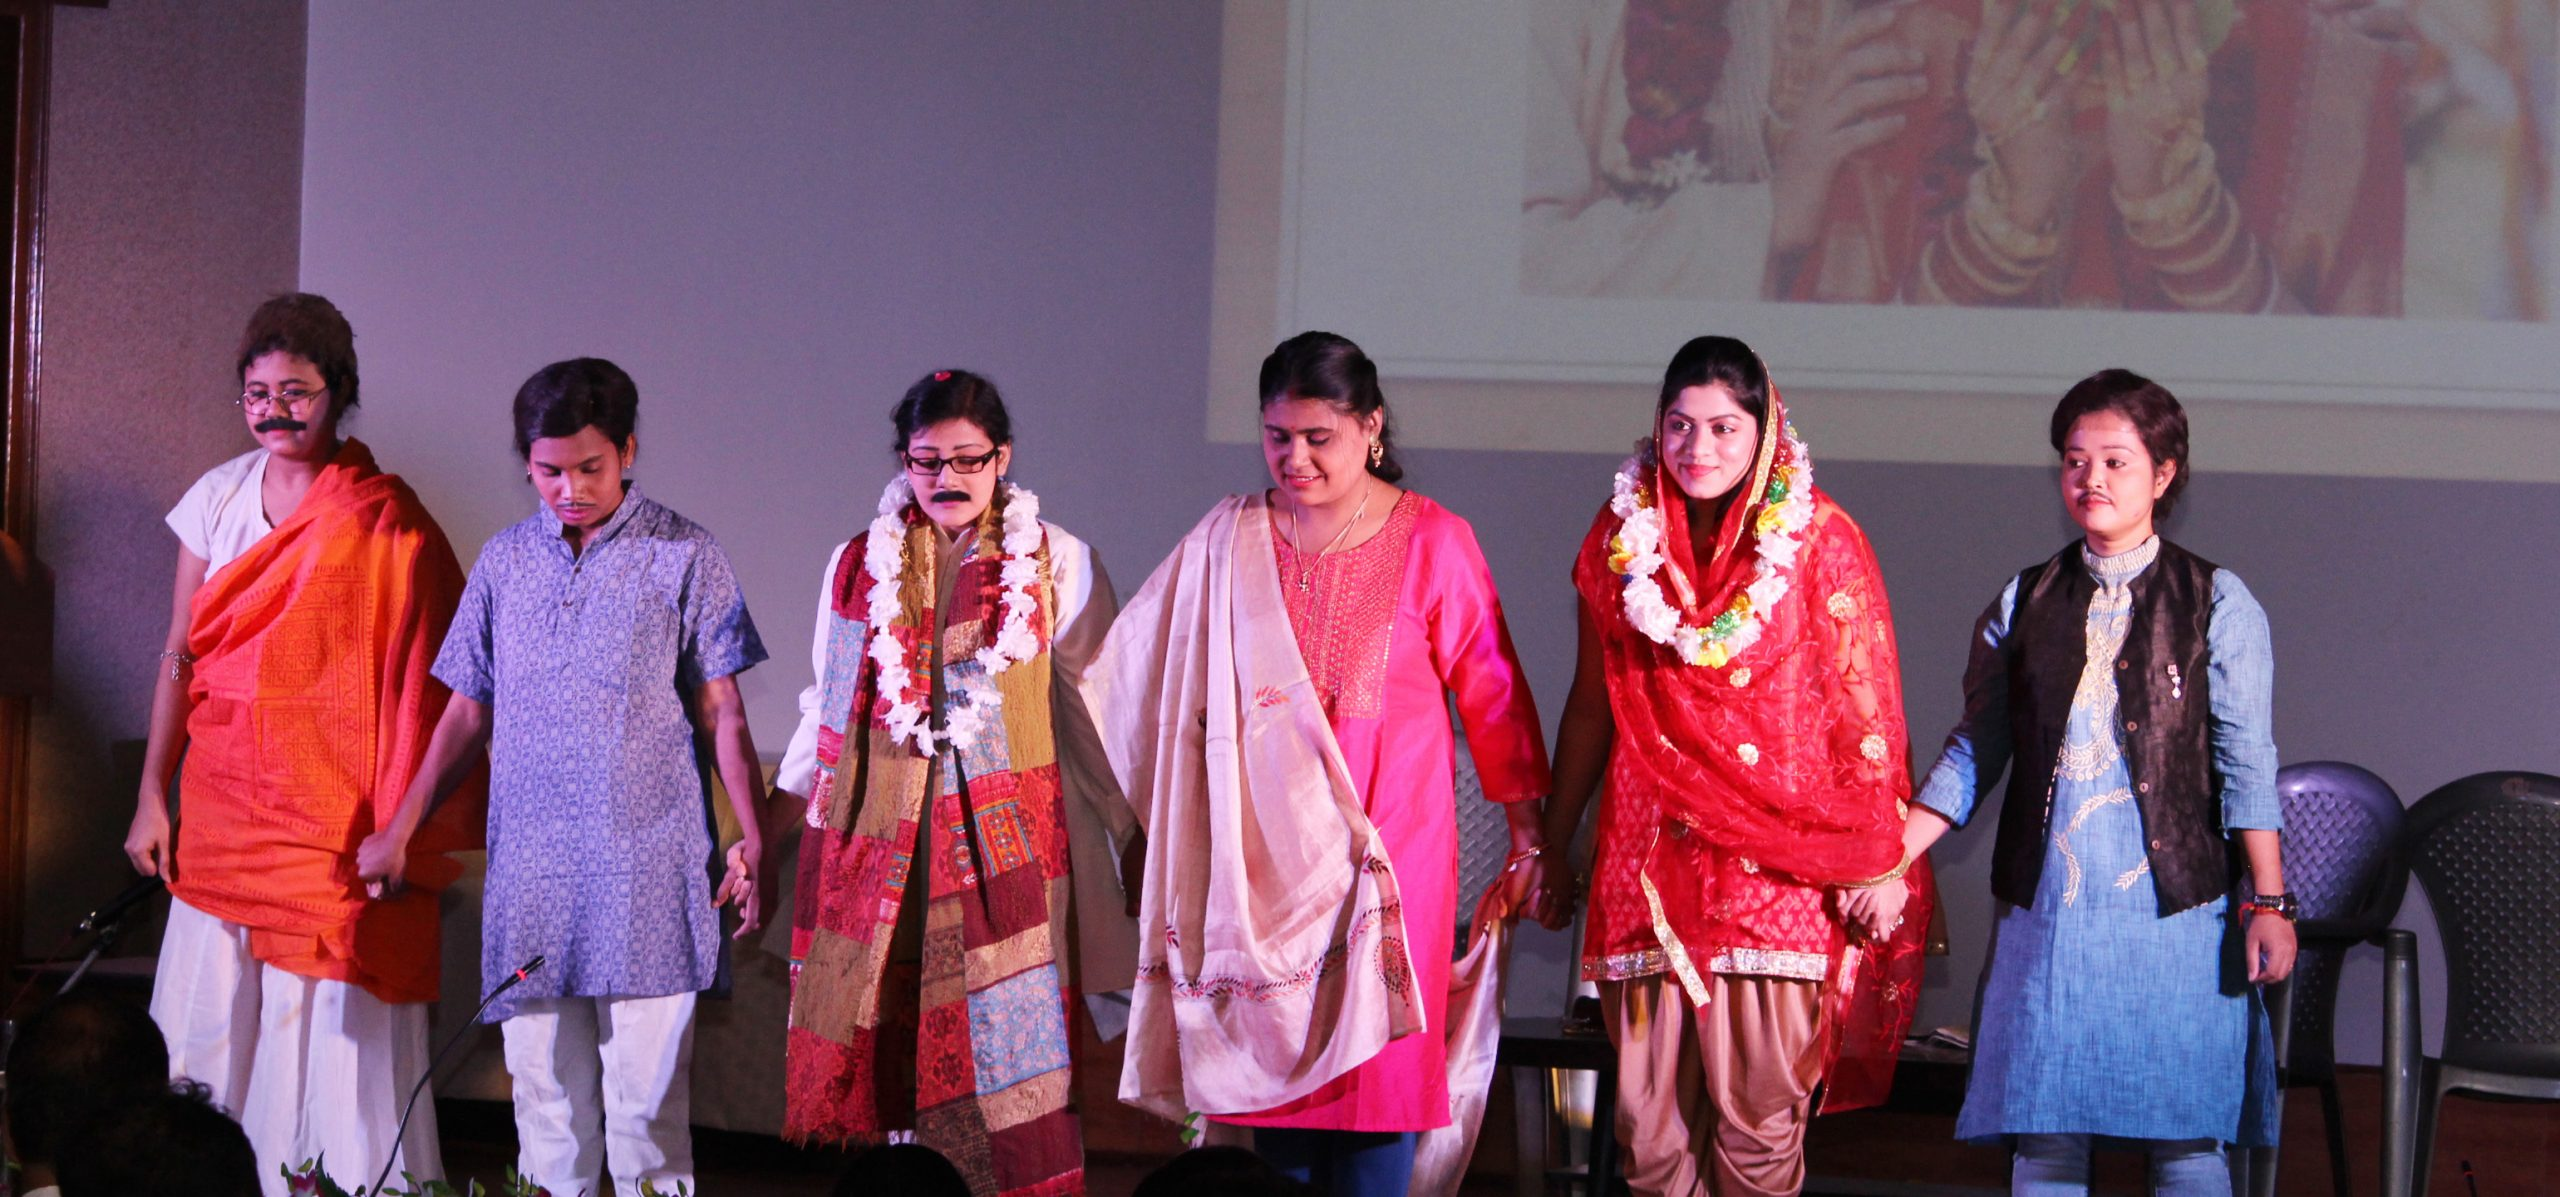 Skit by research students of CSIR-CGCRI